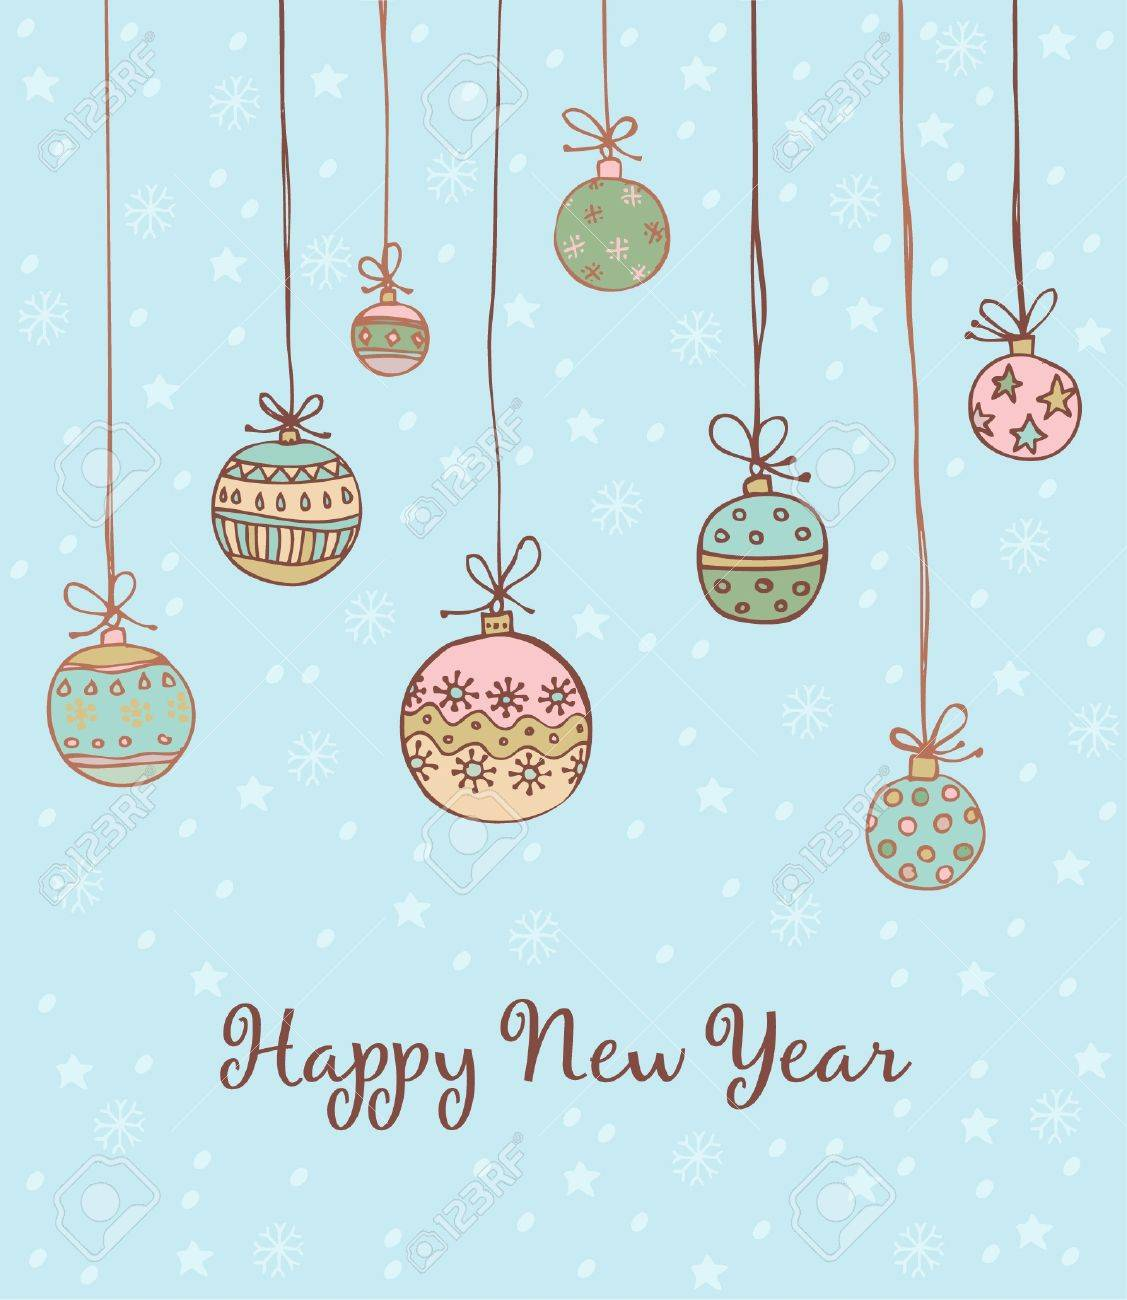 Illustrated text background with Christmas decorative balls  Template for design and decoration New Year s greeting card Stock Vector - 16803654